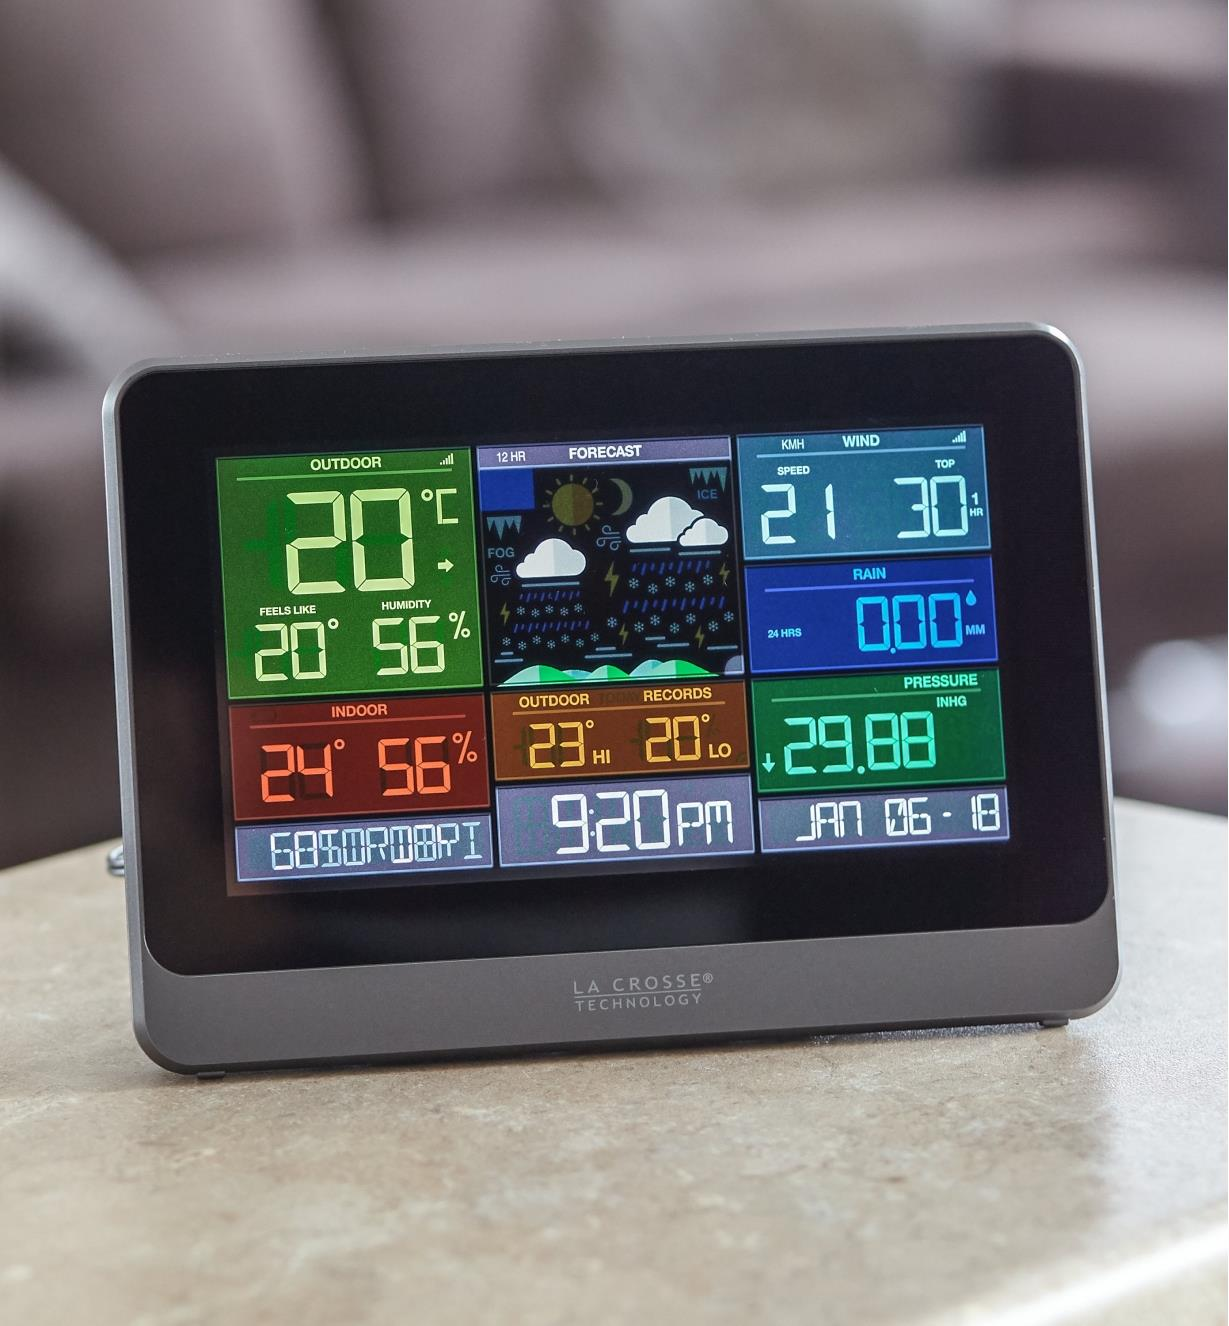 The display unit of the Wi-Fi weather station with wind and rain sits on a tabletop